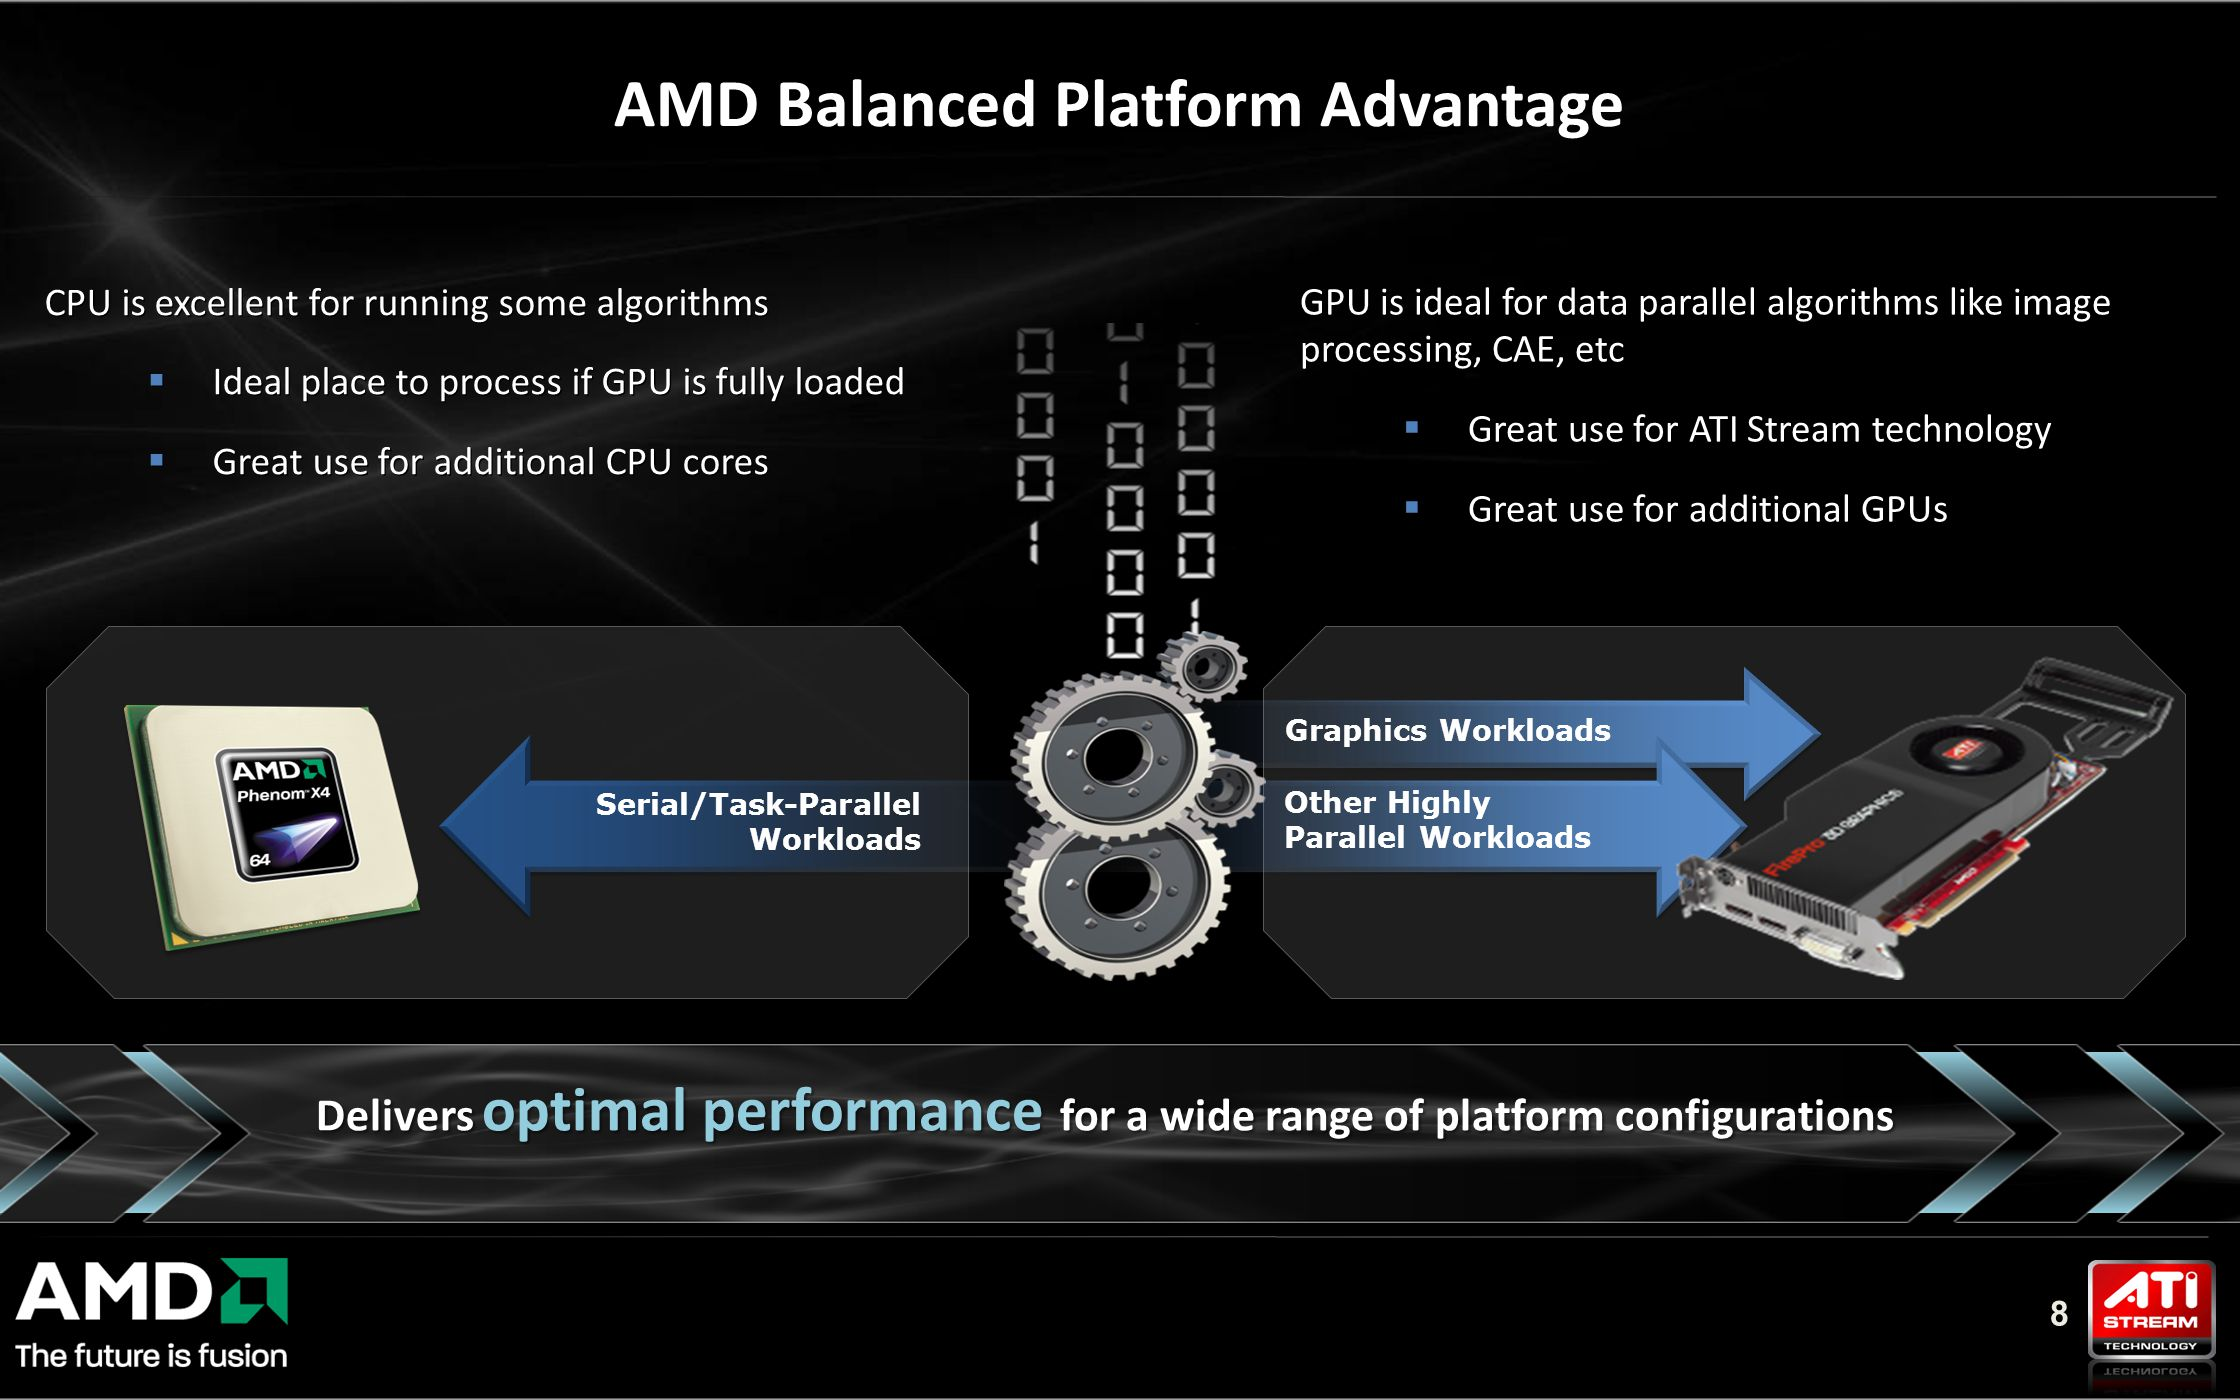 8 AMD Balanced Platform Advantage Delivers optimal performance for a wide range of platform configurations Other Highly Parallel Workloads Graphics Workloads Serial/Task-Parallel Workloads CPU is excellent for running some algorithms  Ideal place to process if GPU is fully loaded  Great use for additional CPU cores CPU is excellent for running some algorithms  Ideal place to process if GPU is fully loaded  Great use for additional CPU cores GPU is ideal for data parallel algorithms like image processing, CAE, etc  Great use for ATI Stream technology  Great use for additional GPUs GPU is ideal for data parallel algorithms like image processing, CAE, etc  Great use for ATI Stream technology  Great use for additional GPUs